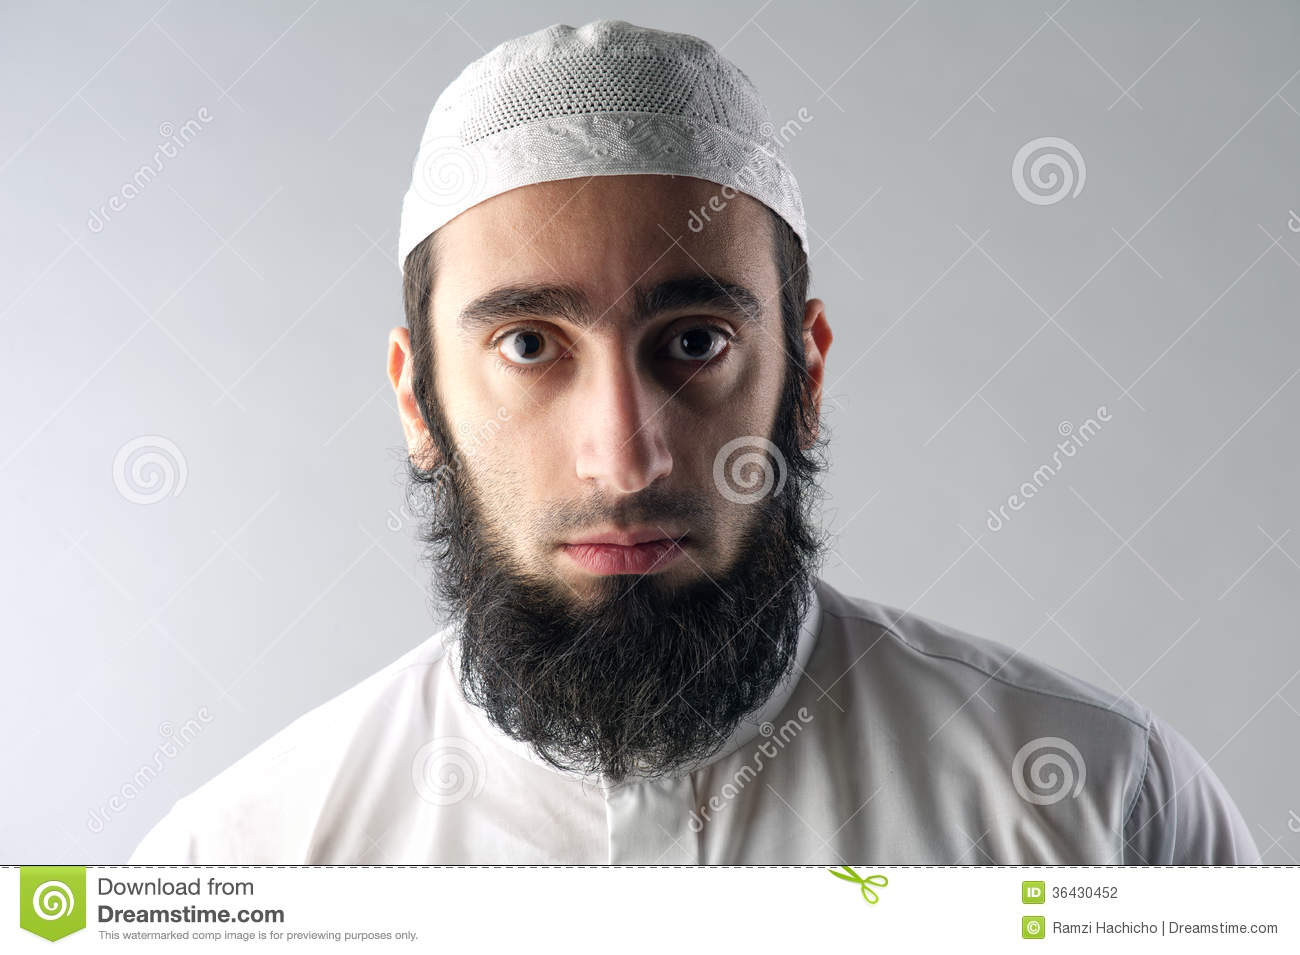 Arabic Muslim Man With Beard Portrait Stock Photography - Image ...